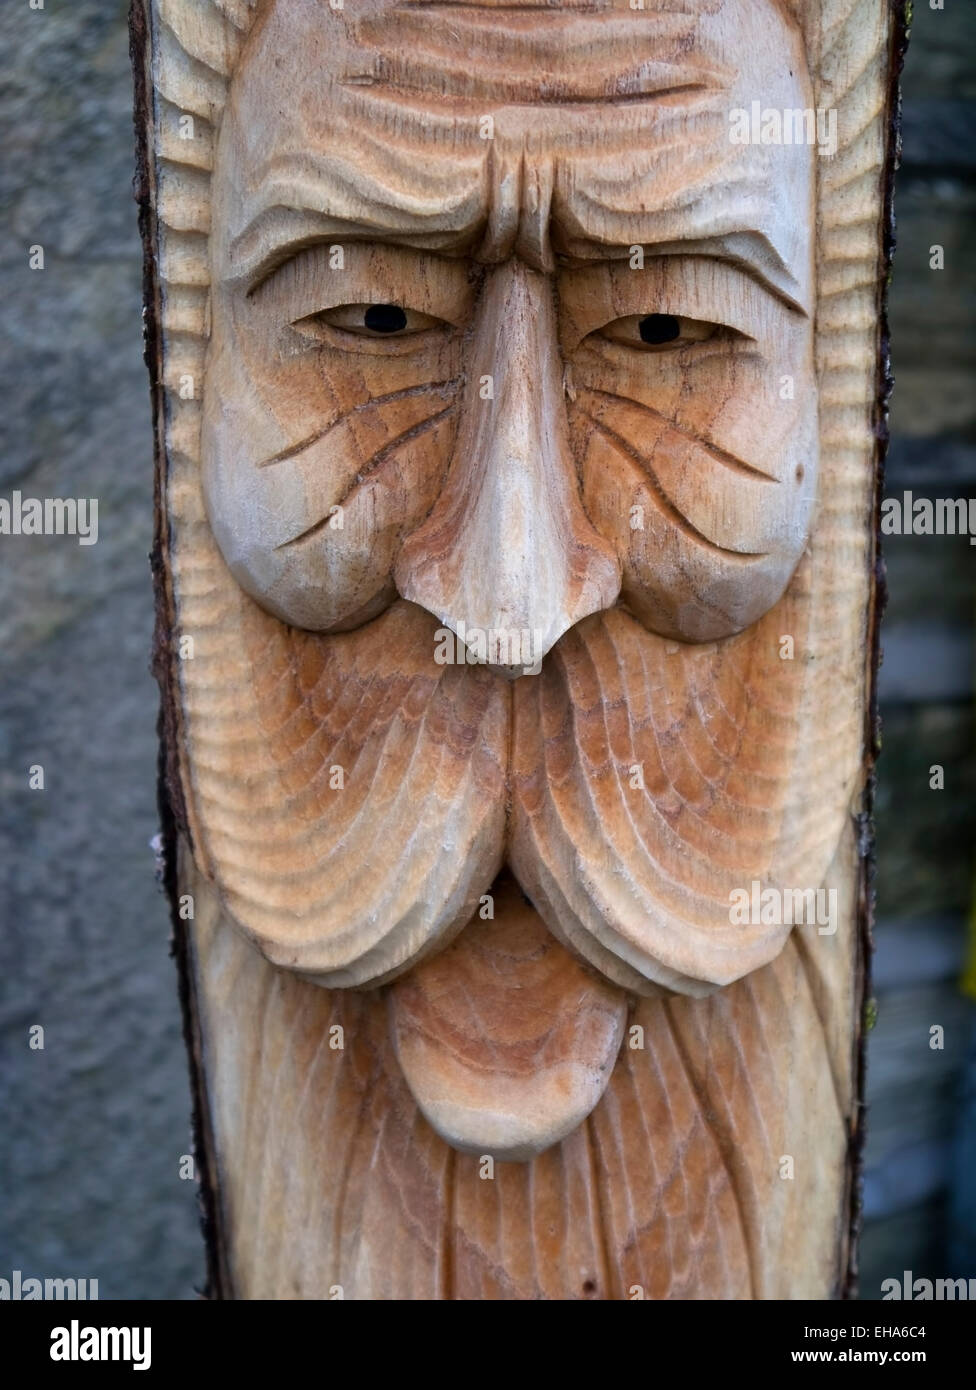 Carvings of wood spirit faces stock photo royalty free